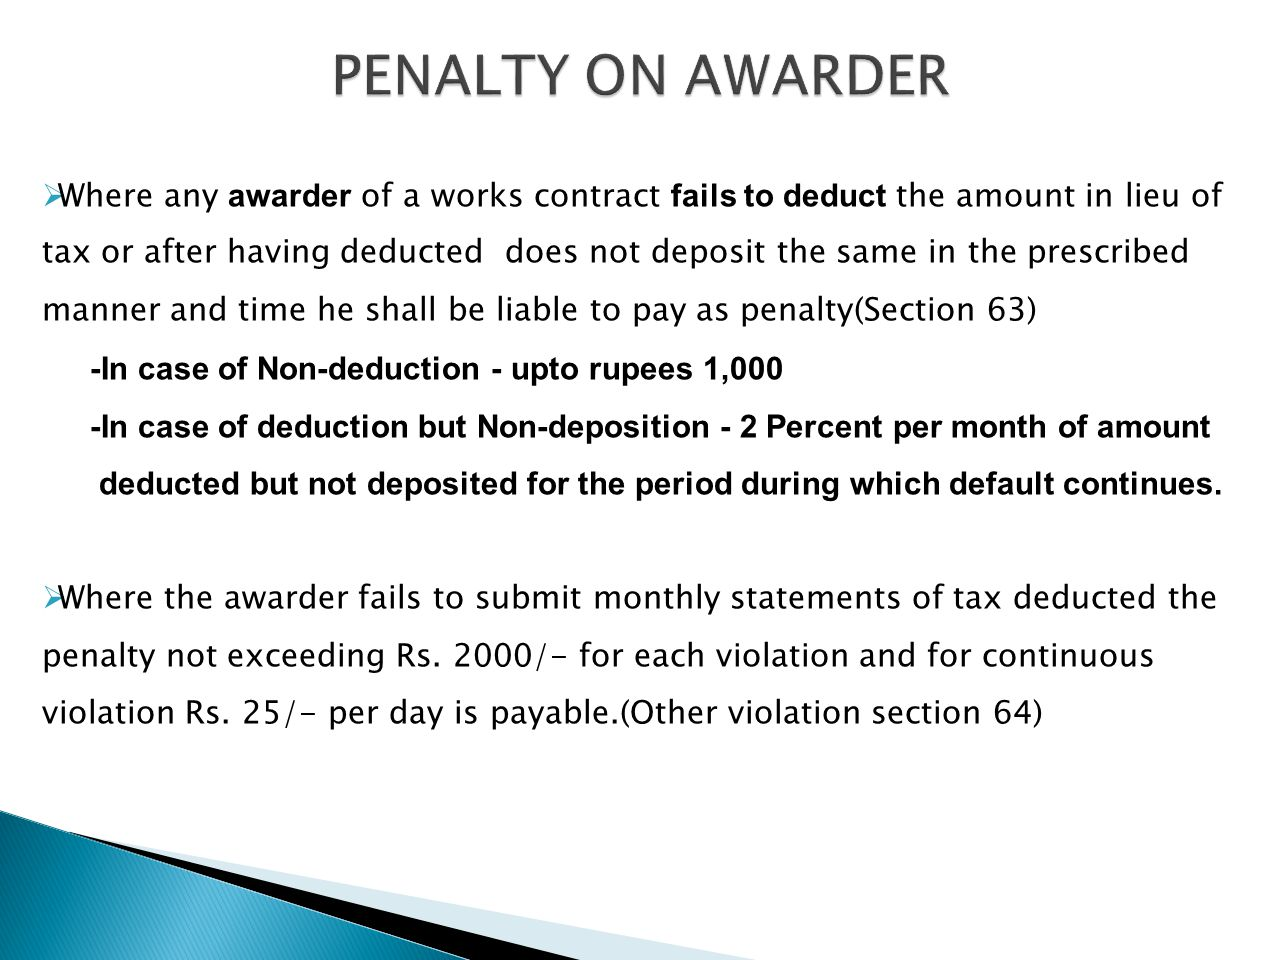 PENALTY ON AWARDER Where any awarder of a works contract fails to deduct the amount in lieu of tax or after having deducted does not deposit the same in the prescribed manner and time he shall be liable to pay as penalty(Section 63) -In case of Non-deduction - upto rupees 1,000 -In case of deduction but Non-deposition - 2 Percent per month of amount deducted but not deposited for the period during which default continues.